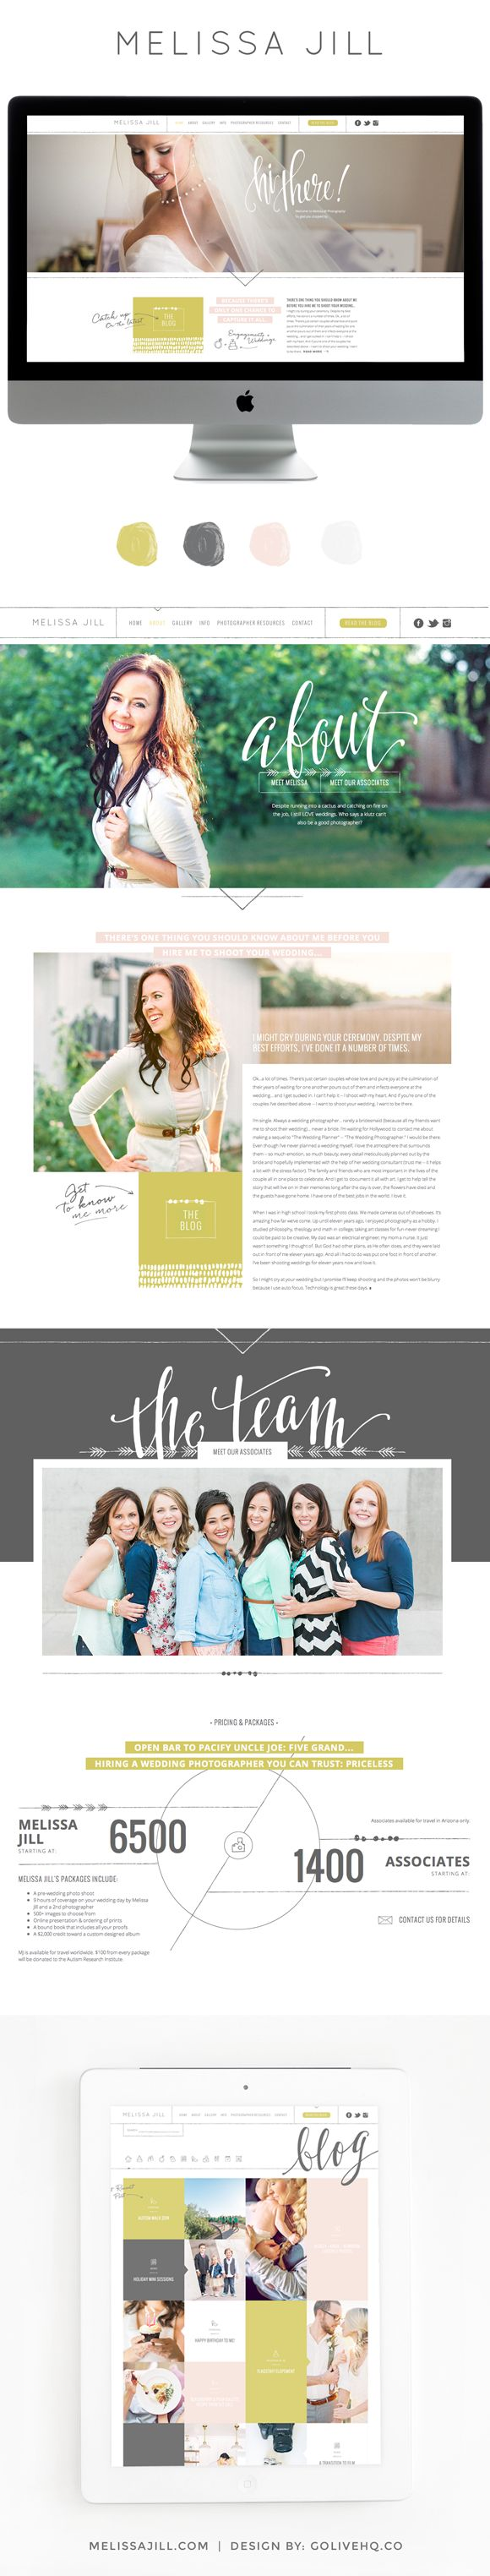 Melissa Jill blog design More Beautiful Website, Blog Layout, Web Design, Buttons, Big Fonts, Websitedesign Webdesign, Blog Designs, Arrows Points, Website Designs Love the big font and the entire design of this Beautiful website by golive arrows pointing for subscribe button the collage of images at the bottom that are clickable #websitedesign #webdesign #crosiercreative #webdesigner Great website design. Its a little busy in other sections, but I love how the entire website utilizes the…